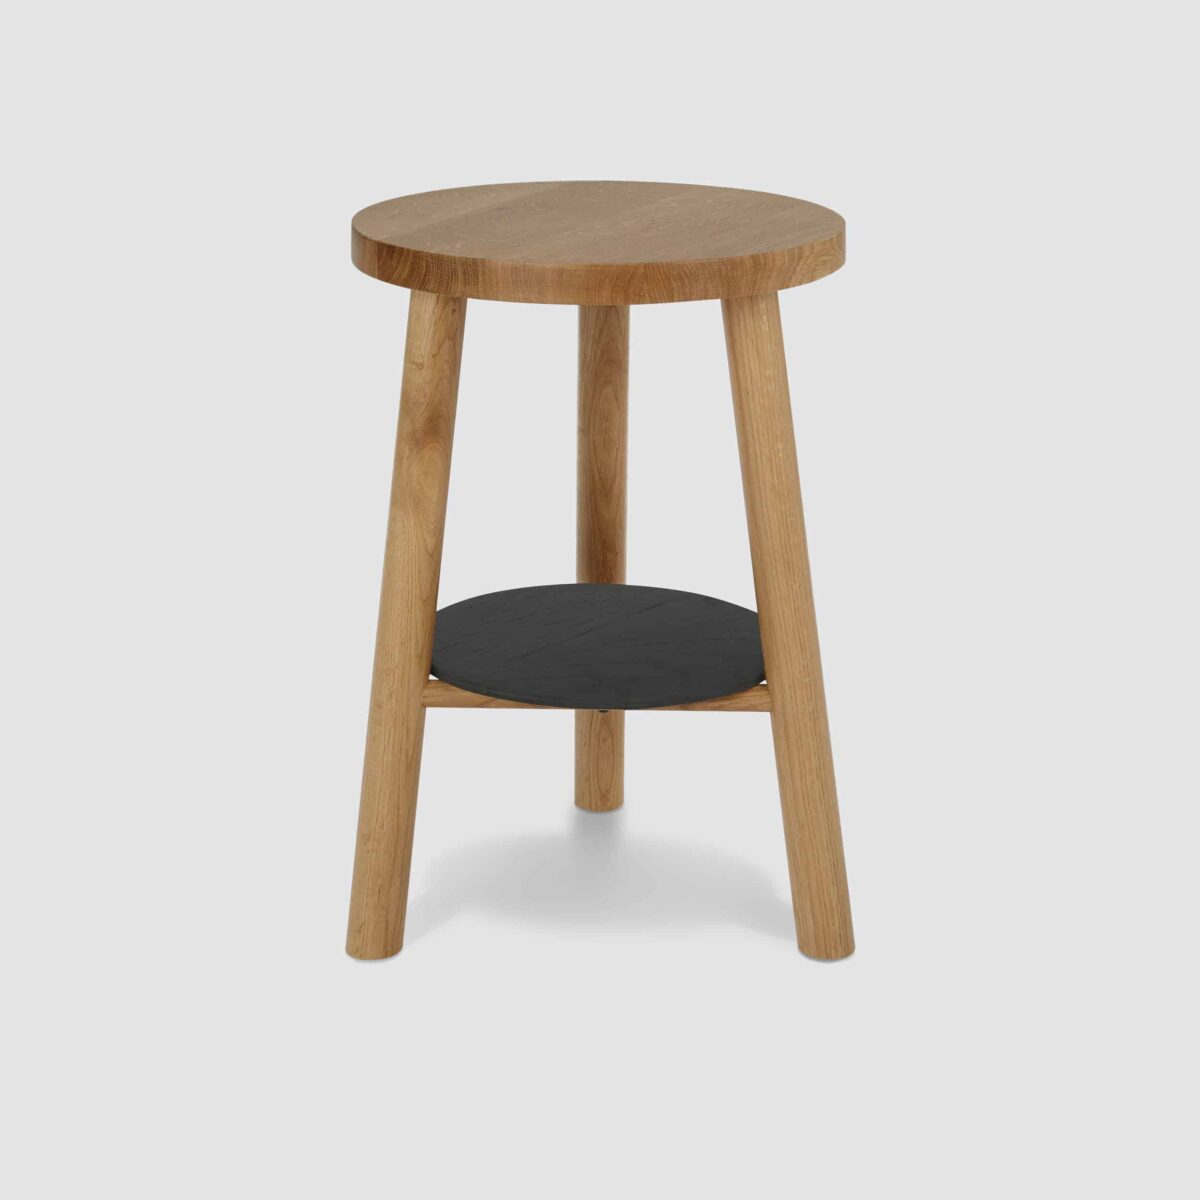 semley-side-table-oak-another-country-001